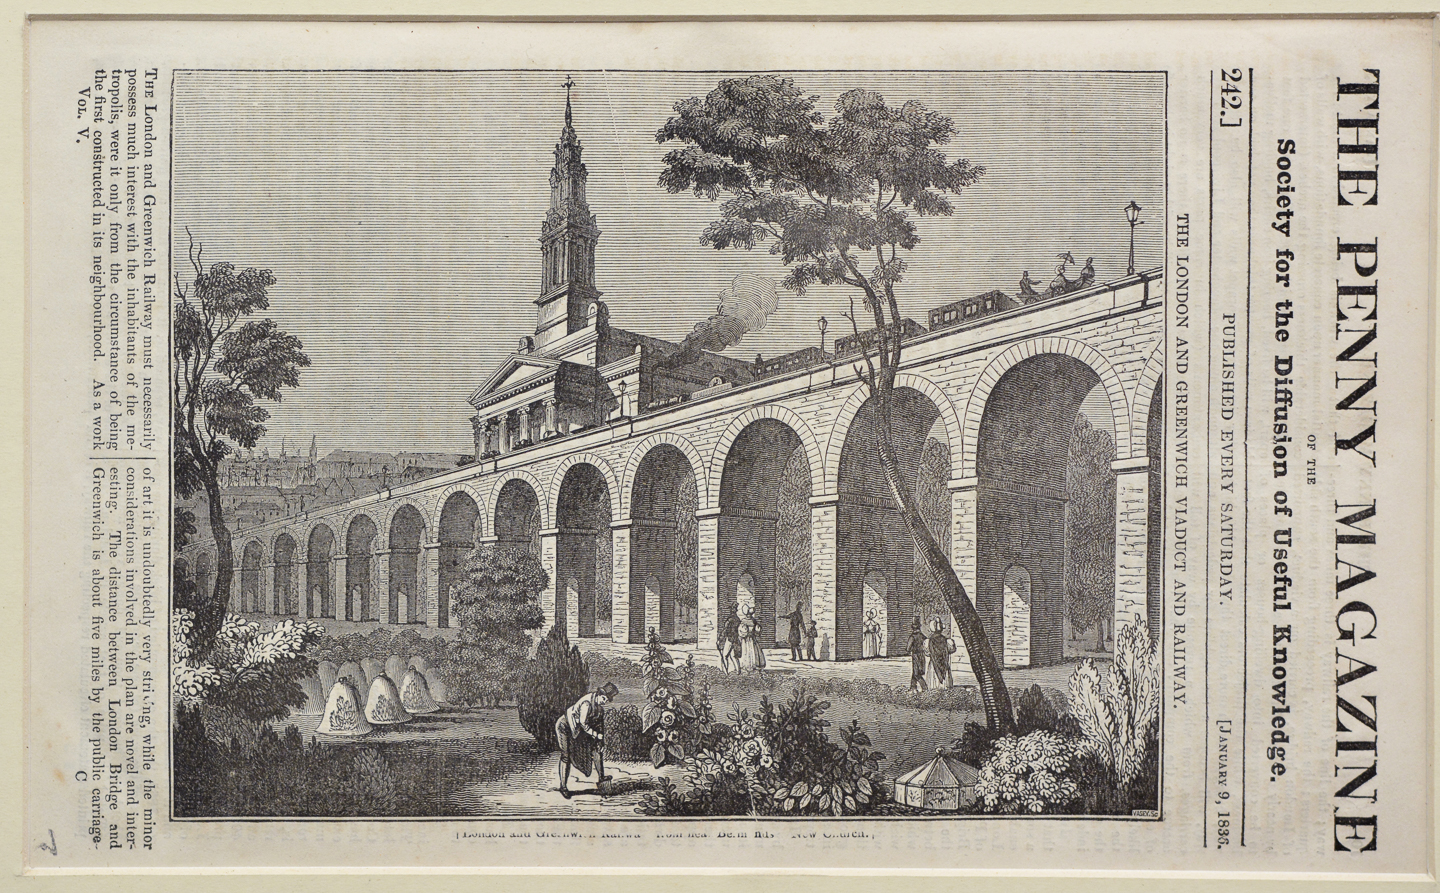 The London and Greenwich Viaduct and Railway-134324